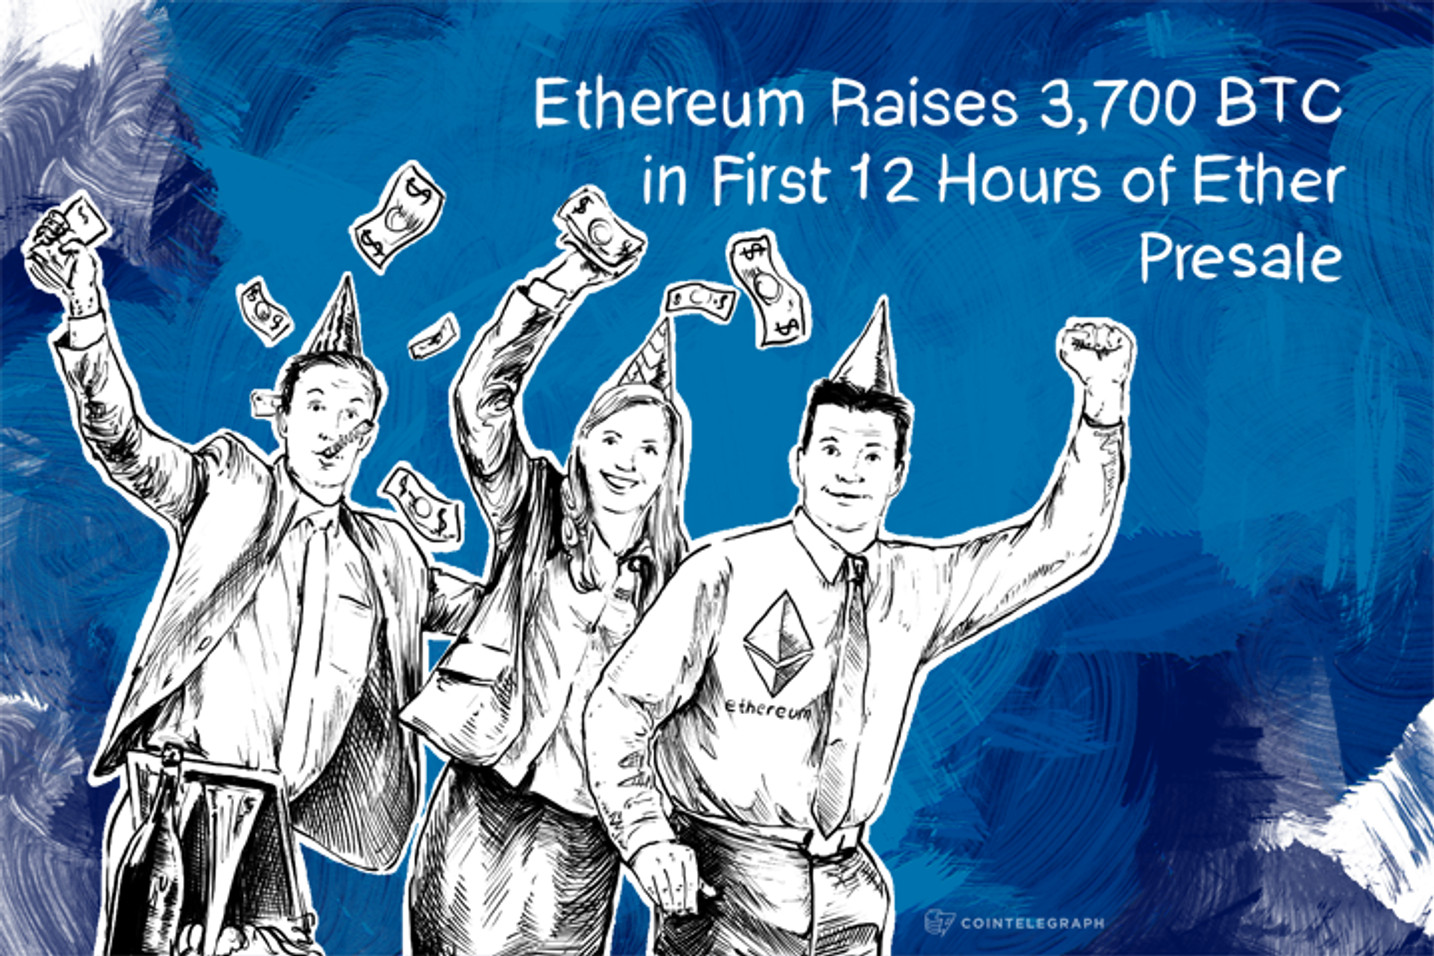 Ethereum Raises 3,700 BTC in First 12 Hours of Ether Presale